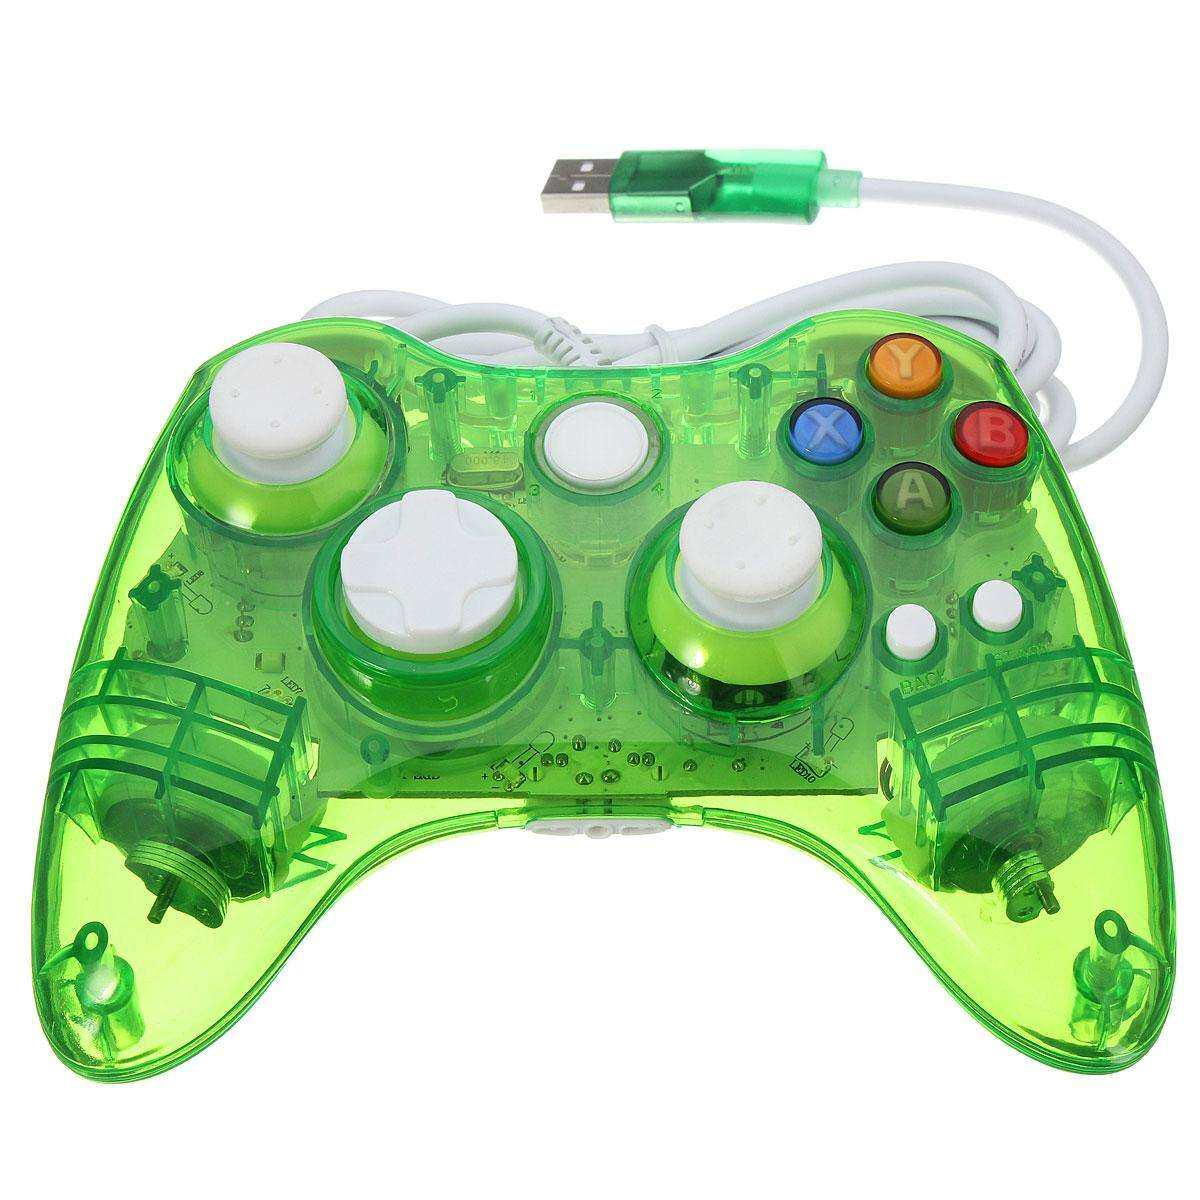 hight resolution of glow led colors wired usb controller gamepad fit for microsoft xbox 360 pc green